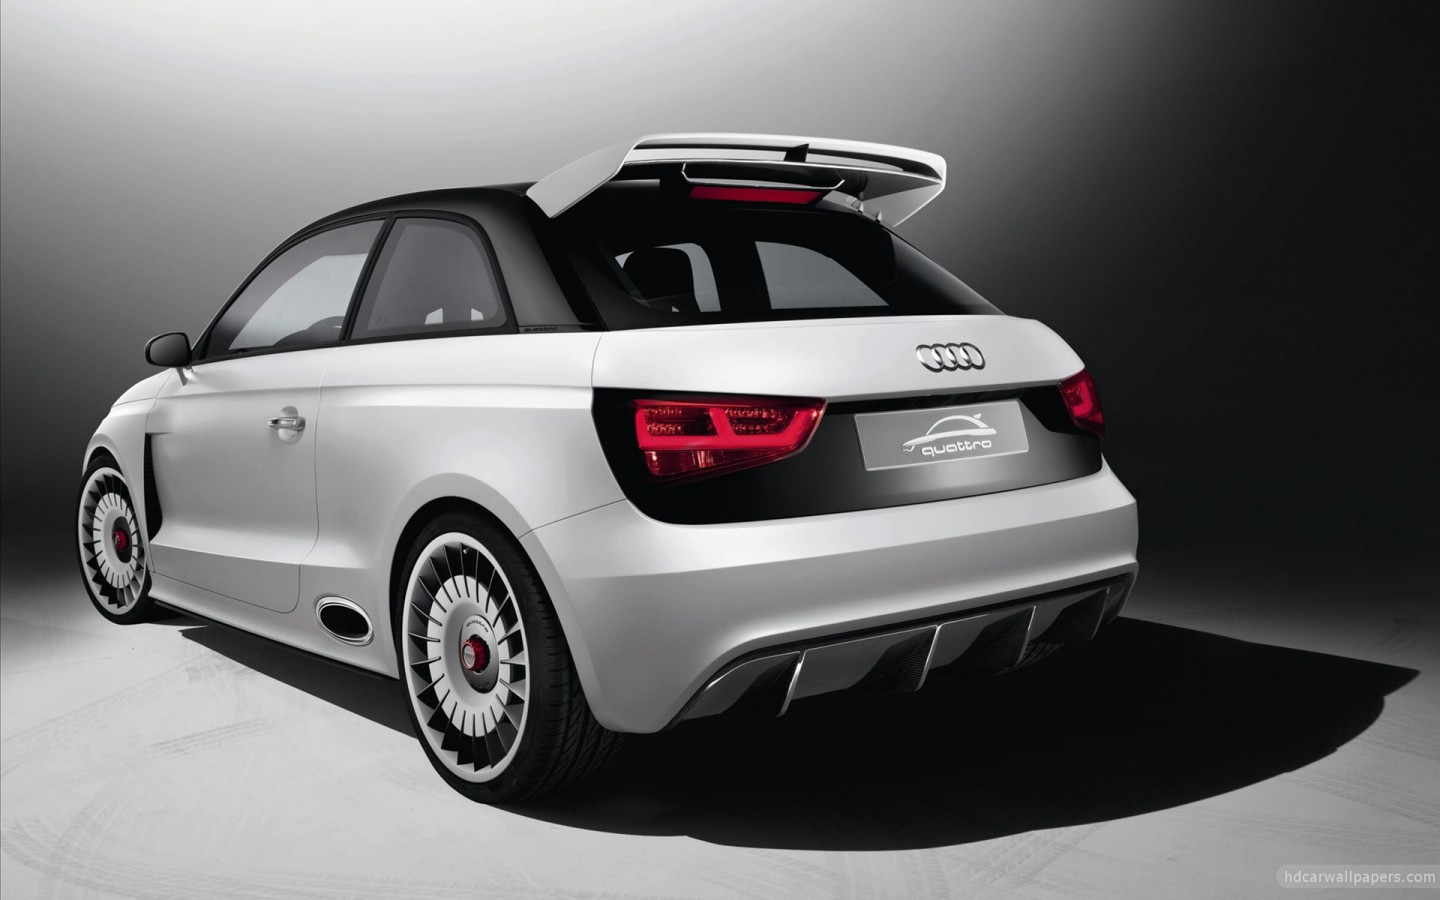 2011 audi a1 clubsport quattro 2 wallpaper hd car wallpapers id 2061. Black Bedroom Furniture Sets. Home Design Ideas